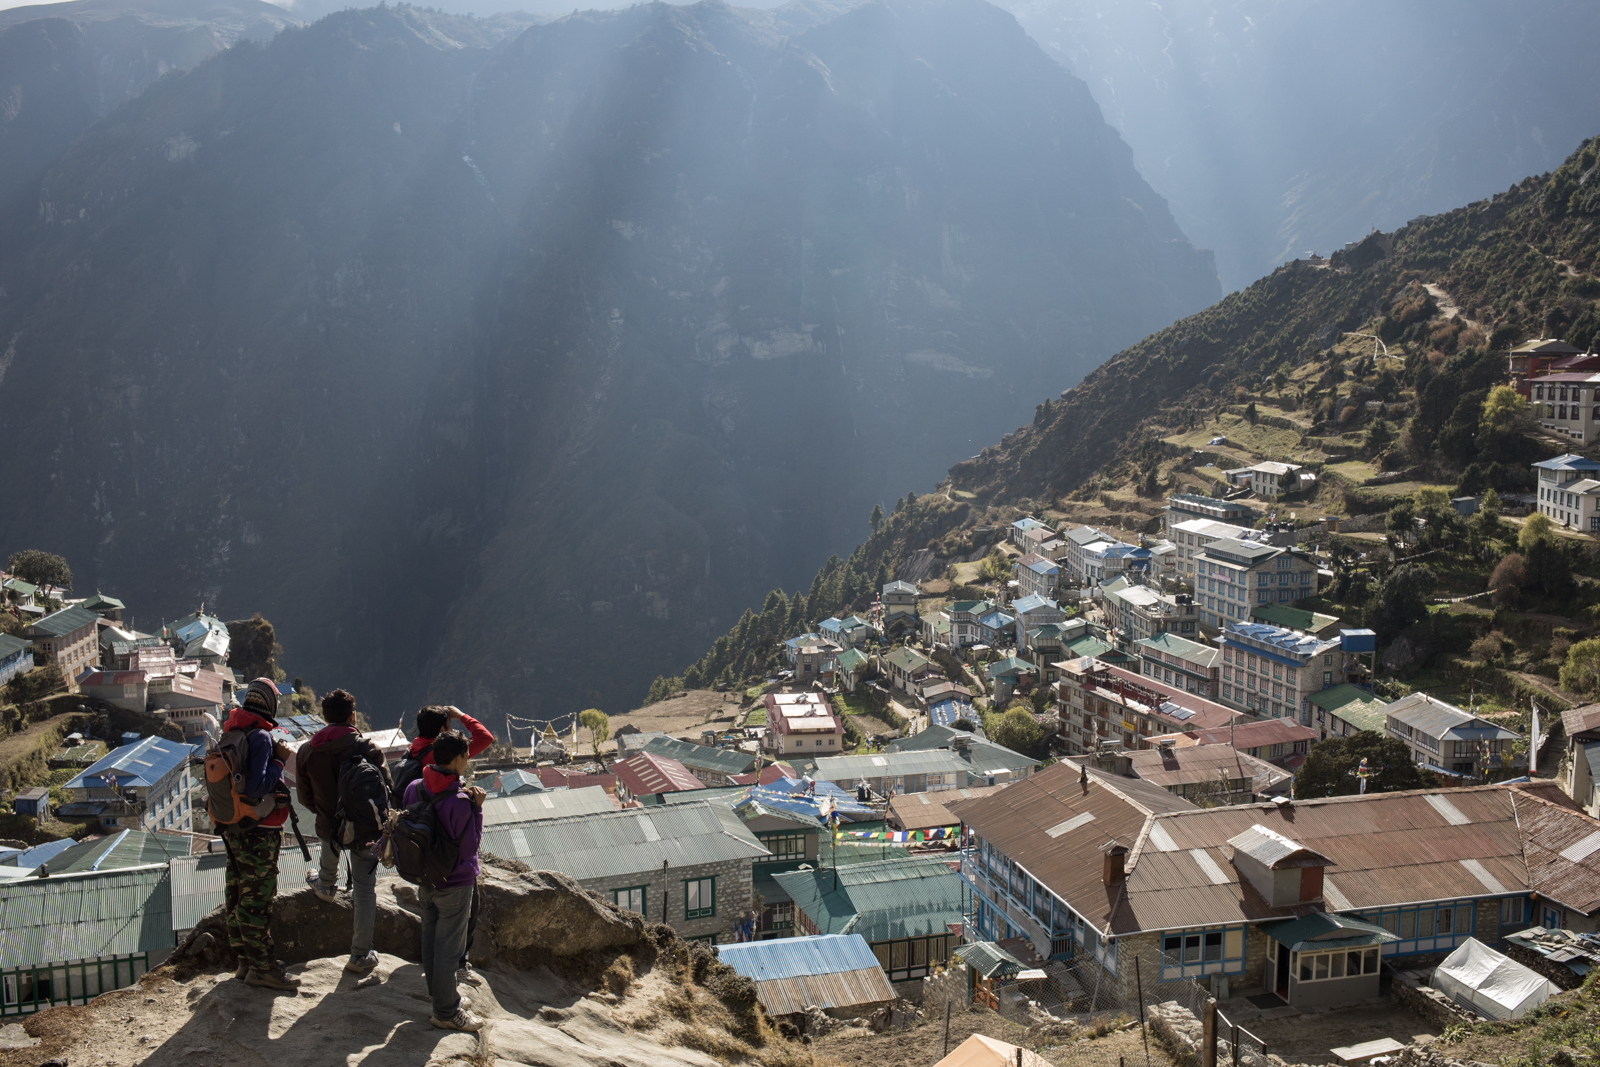 A group of young men look out over the village of Namche light breaks through the clouds.